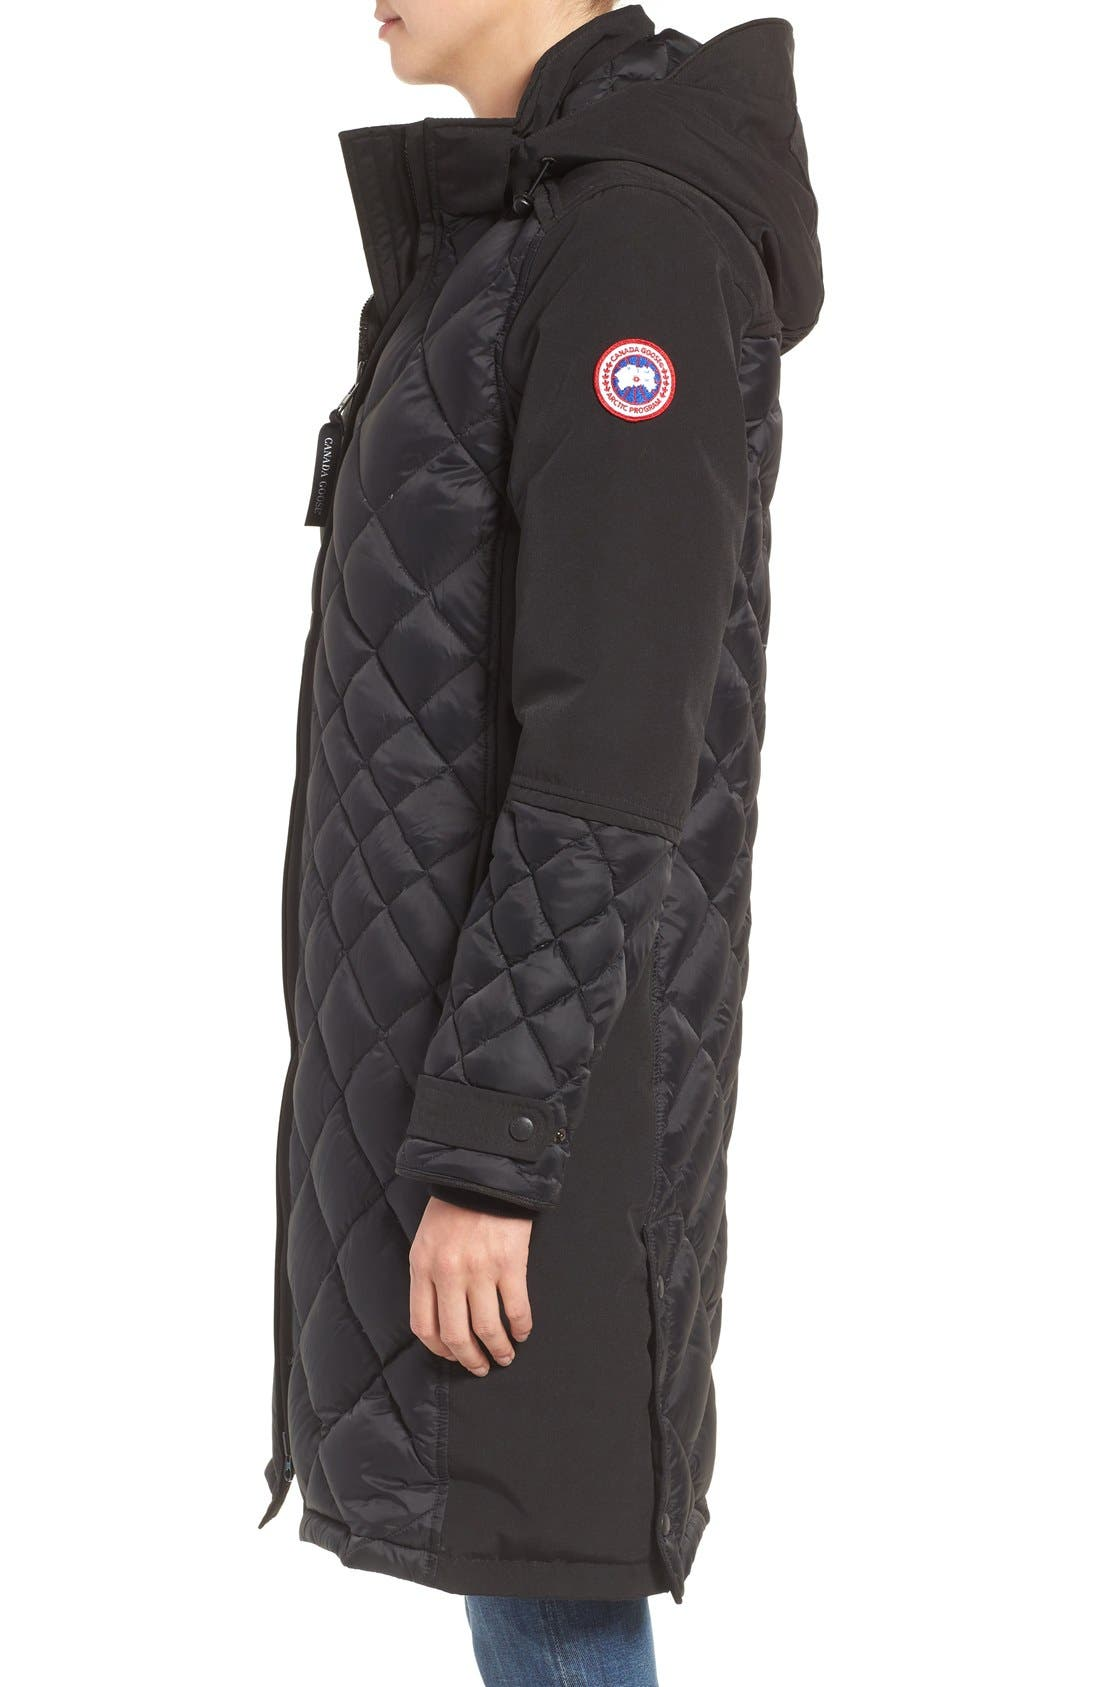 47c6b706e88 ... new style canada goose cabot down coat nordstrom 0f4a9 da4d2 new  zealand canada goose dawson parka women clothingcanada goose clearance ...